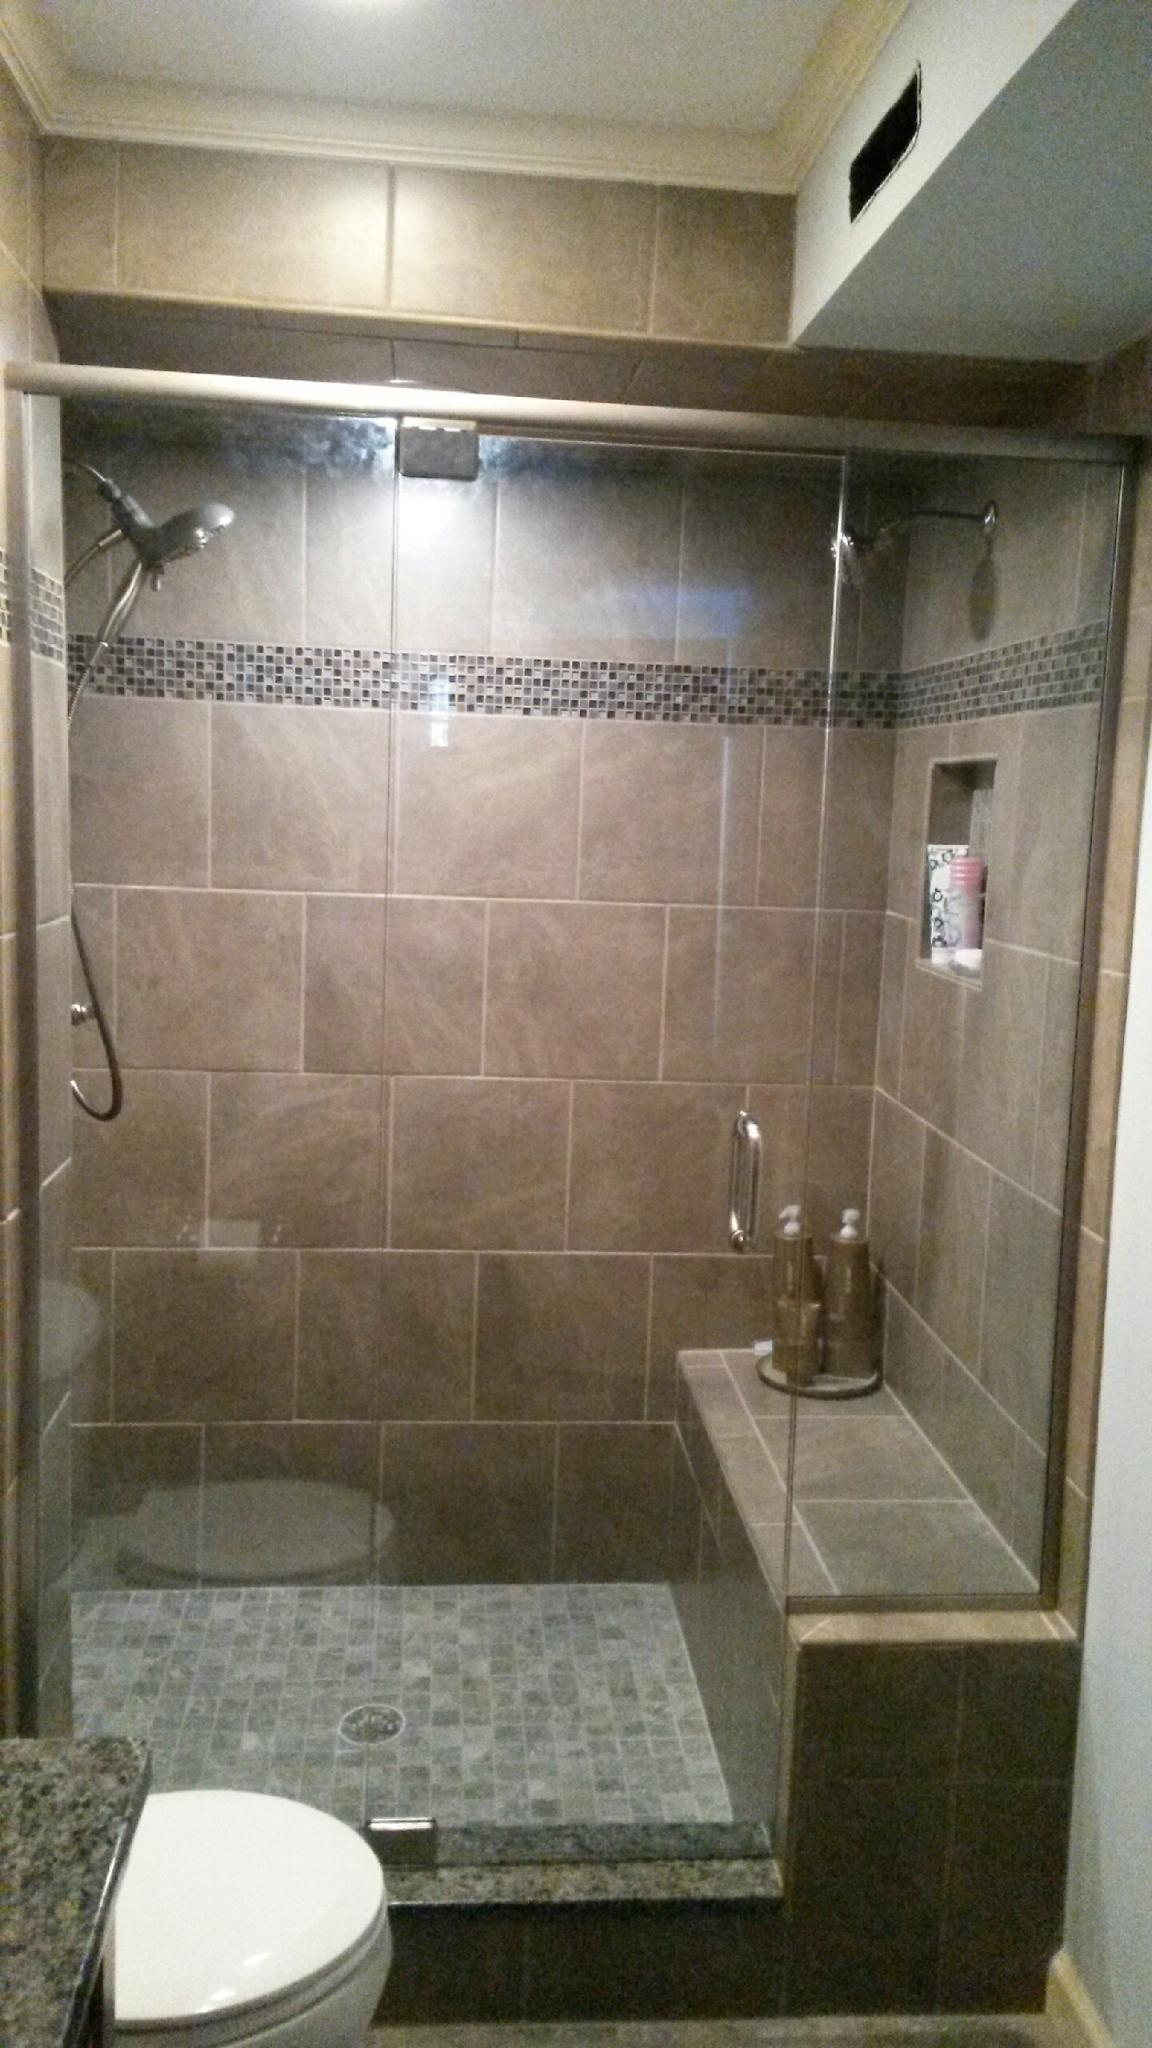 https://0201.nccdn.net/4_2/000/000/04d/add/Shower-door-custom-frameless-with-2-sidelites-KMoore.jpg